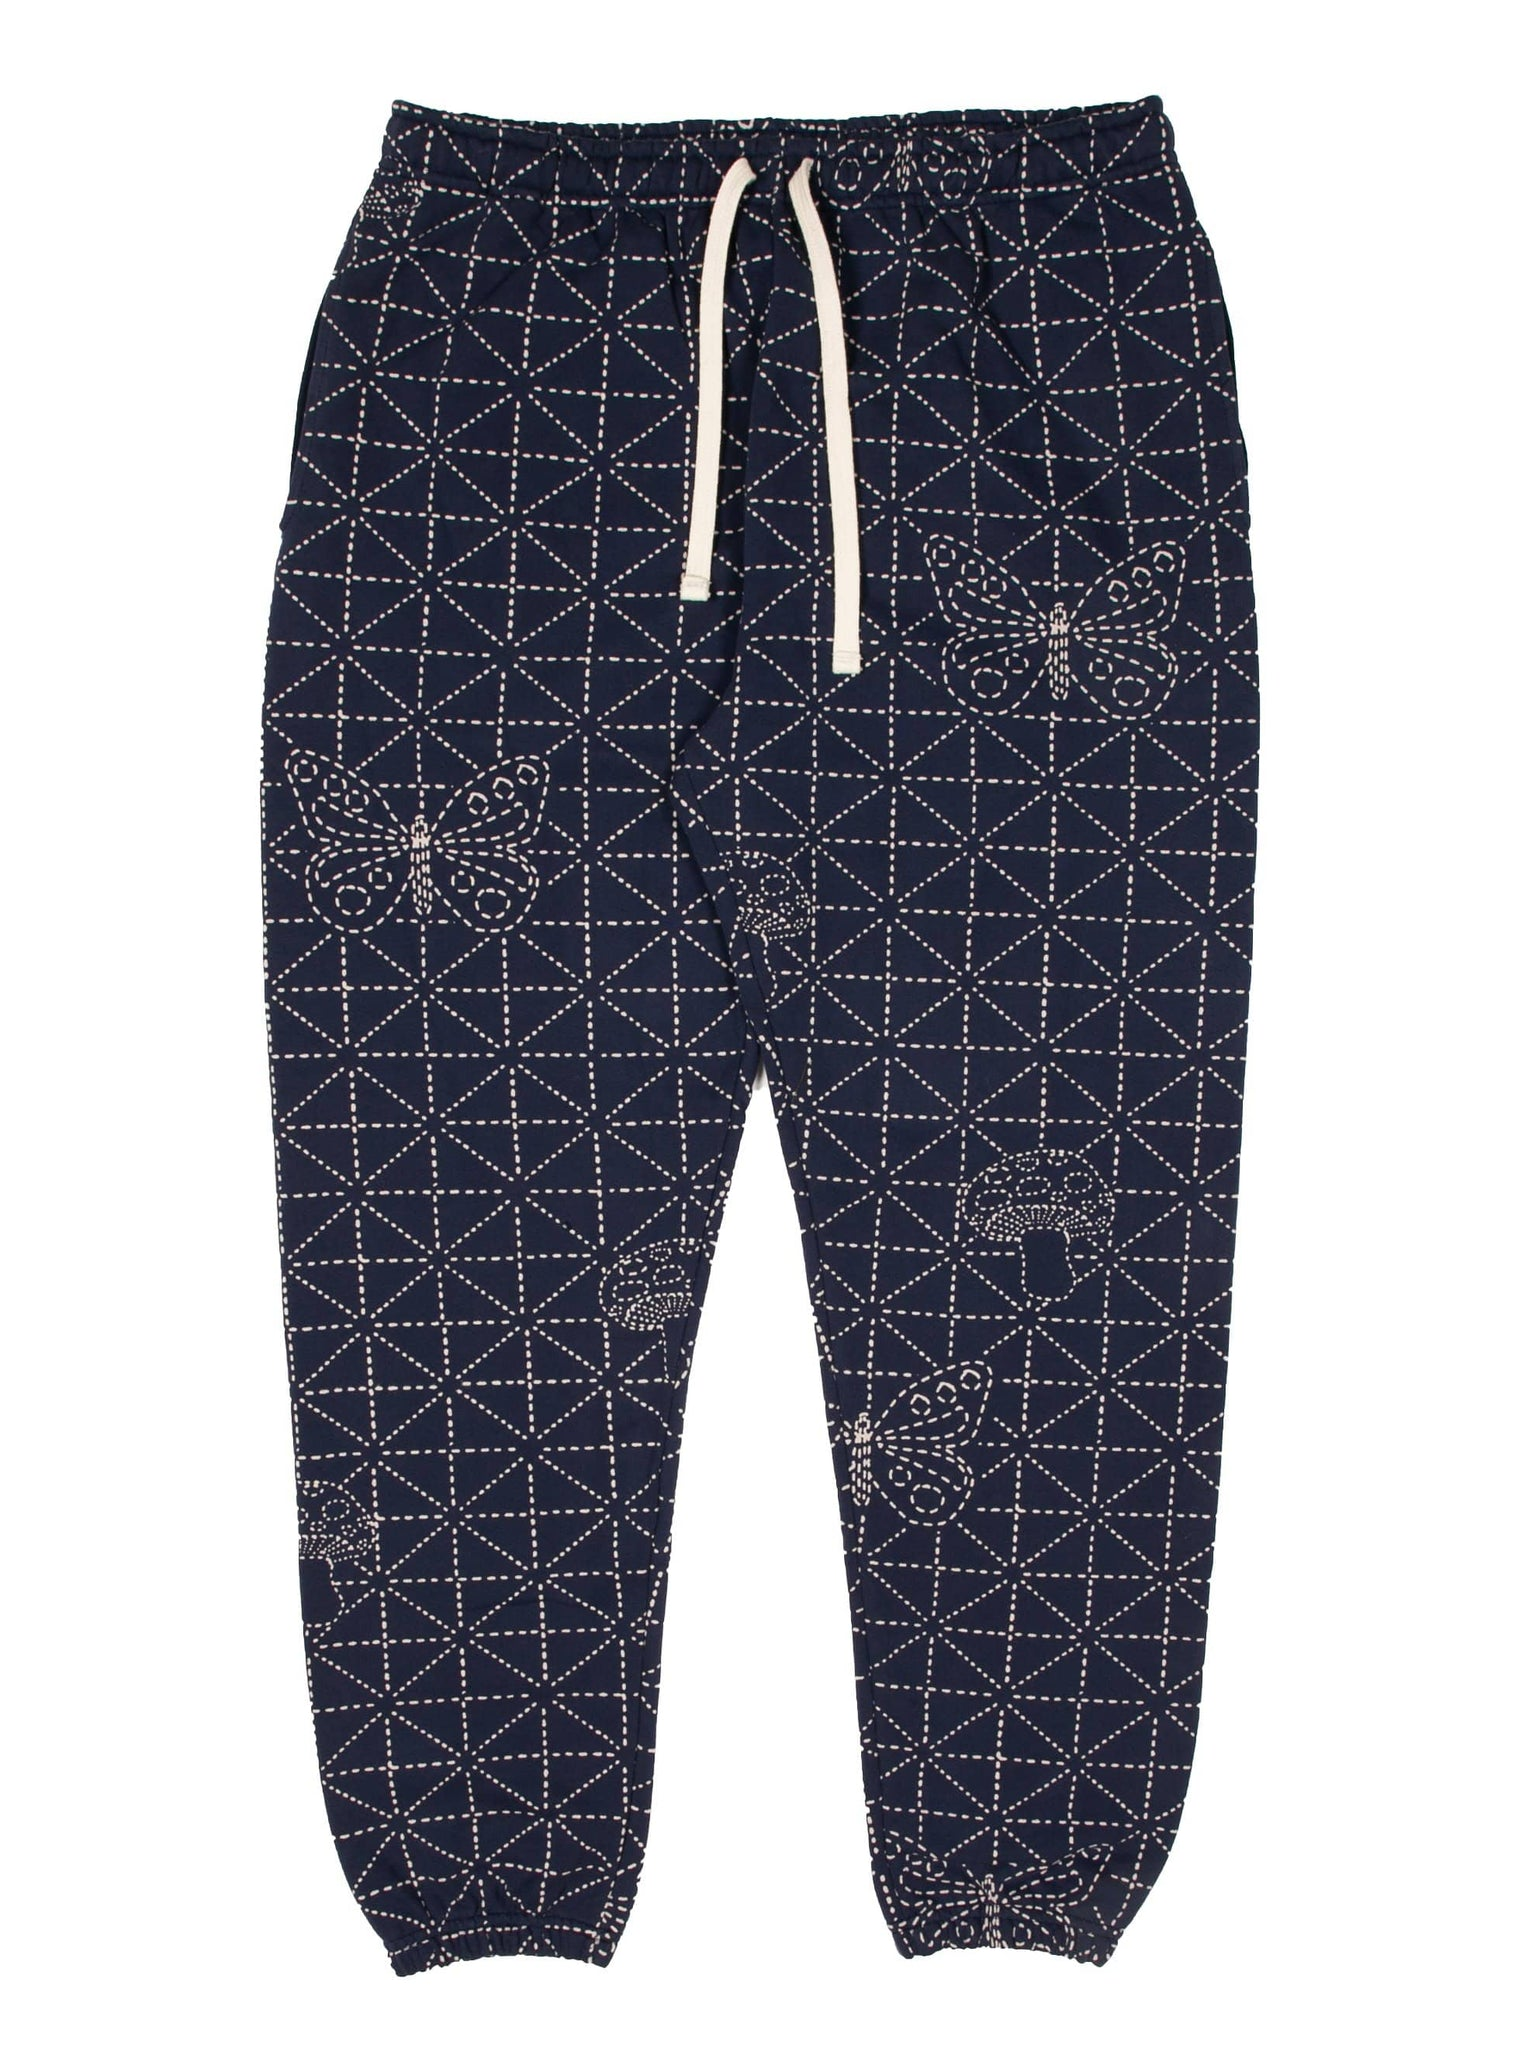 Camp High Indigo / Small KAMP-HAI! Pant